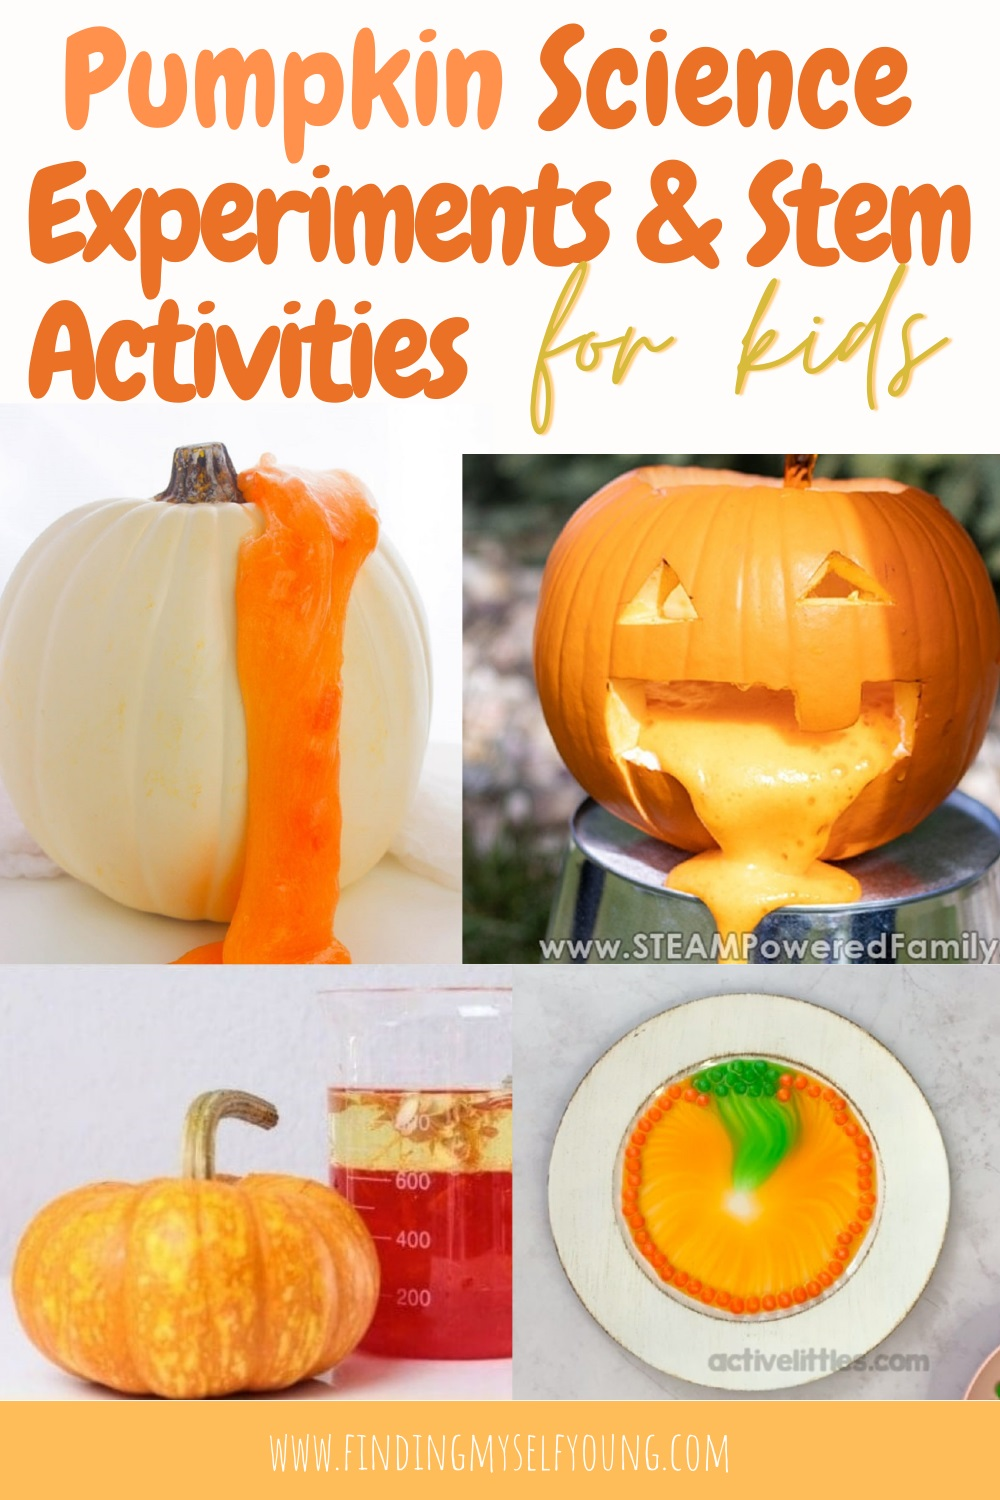 pumpkin science experiments and stem activities for kids